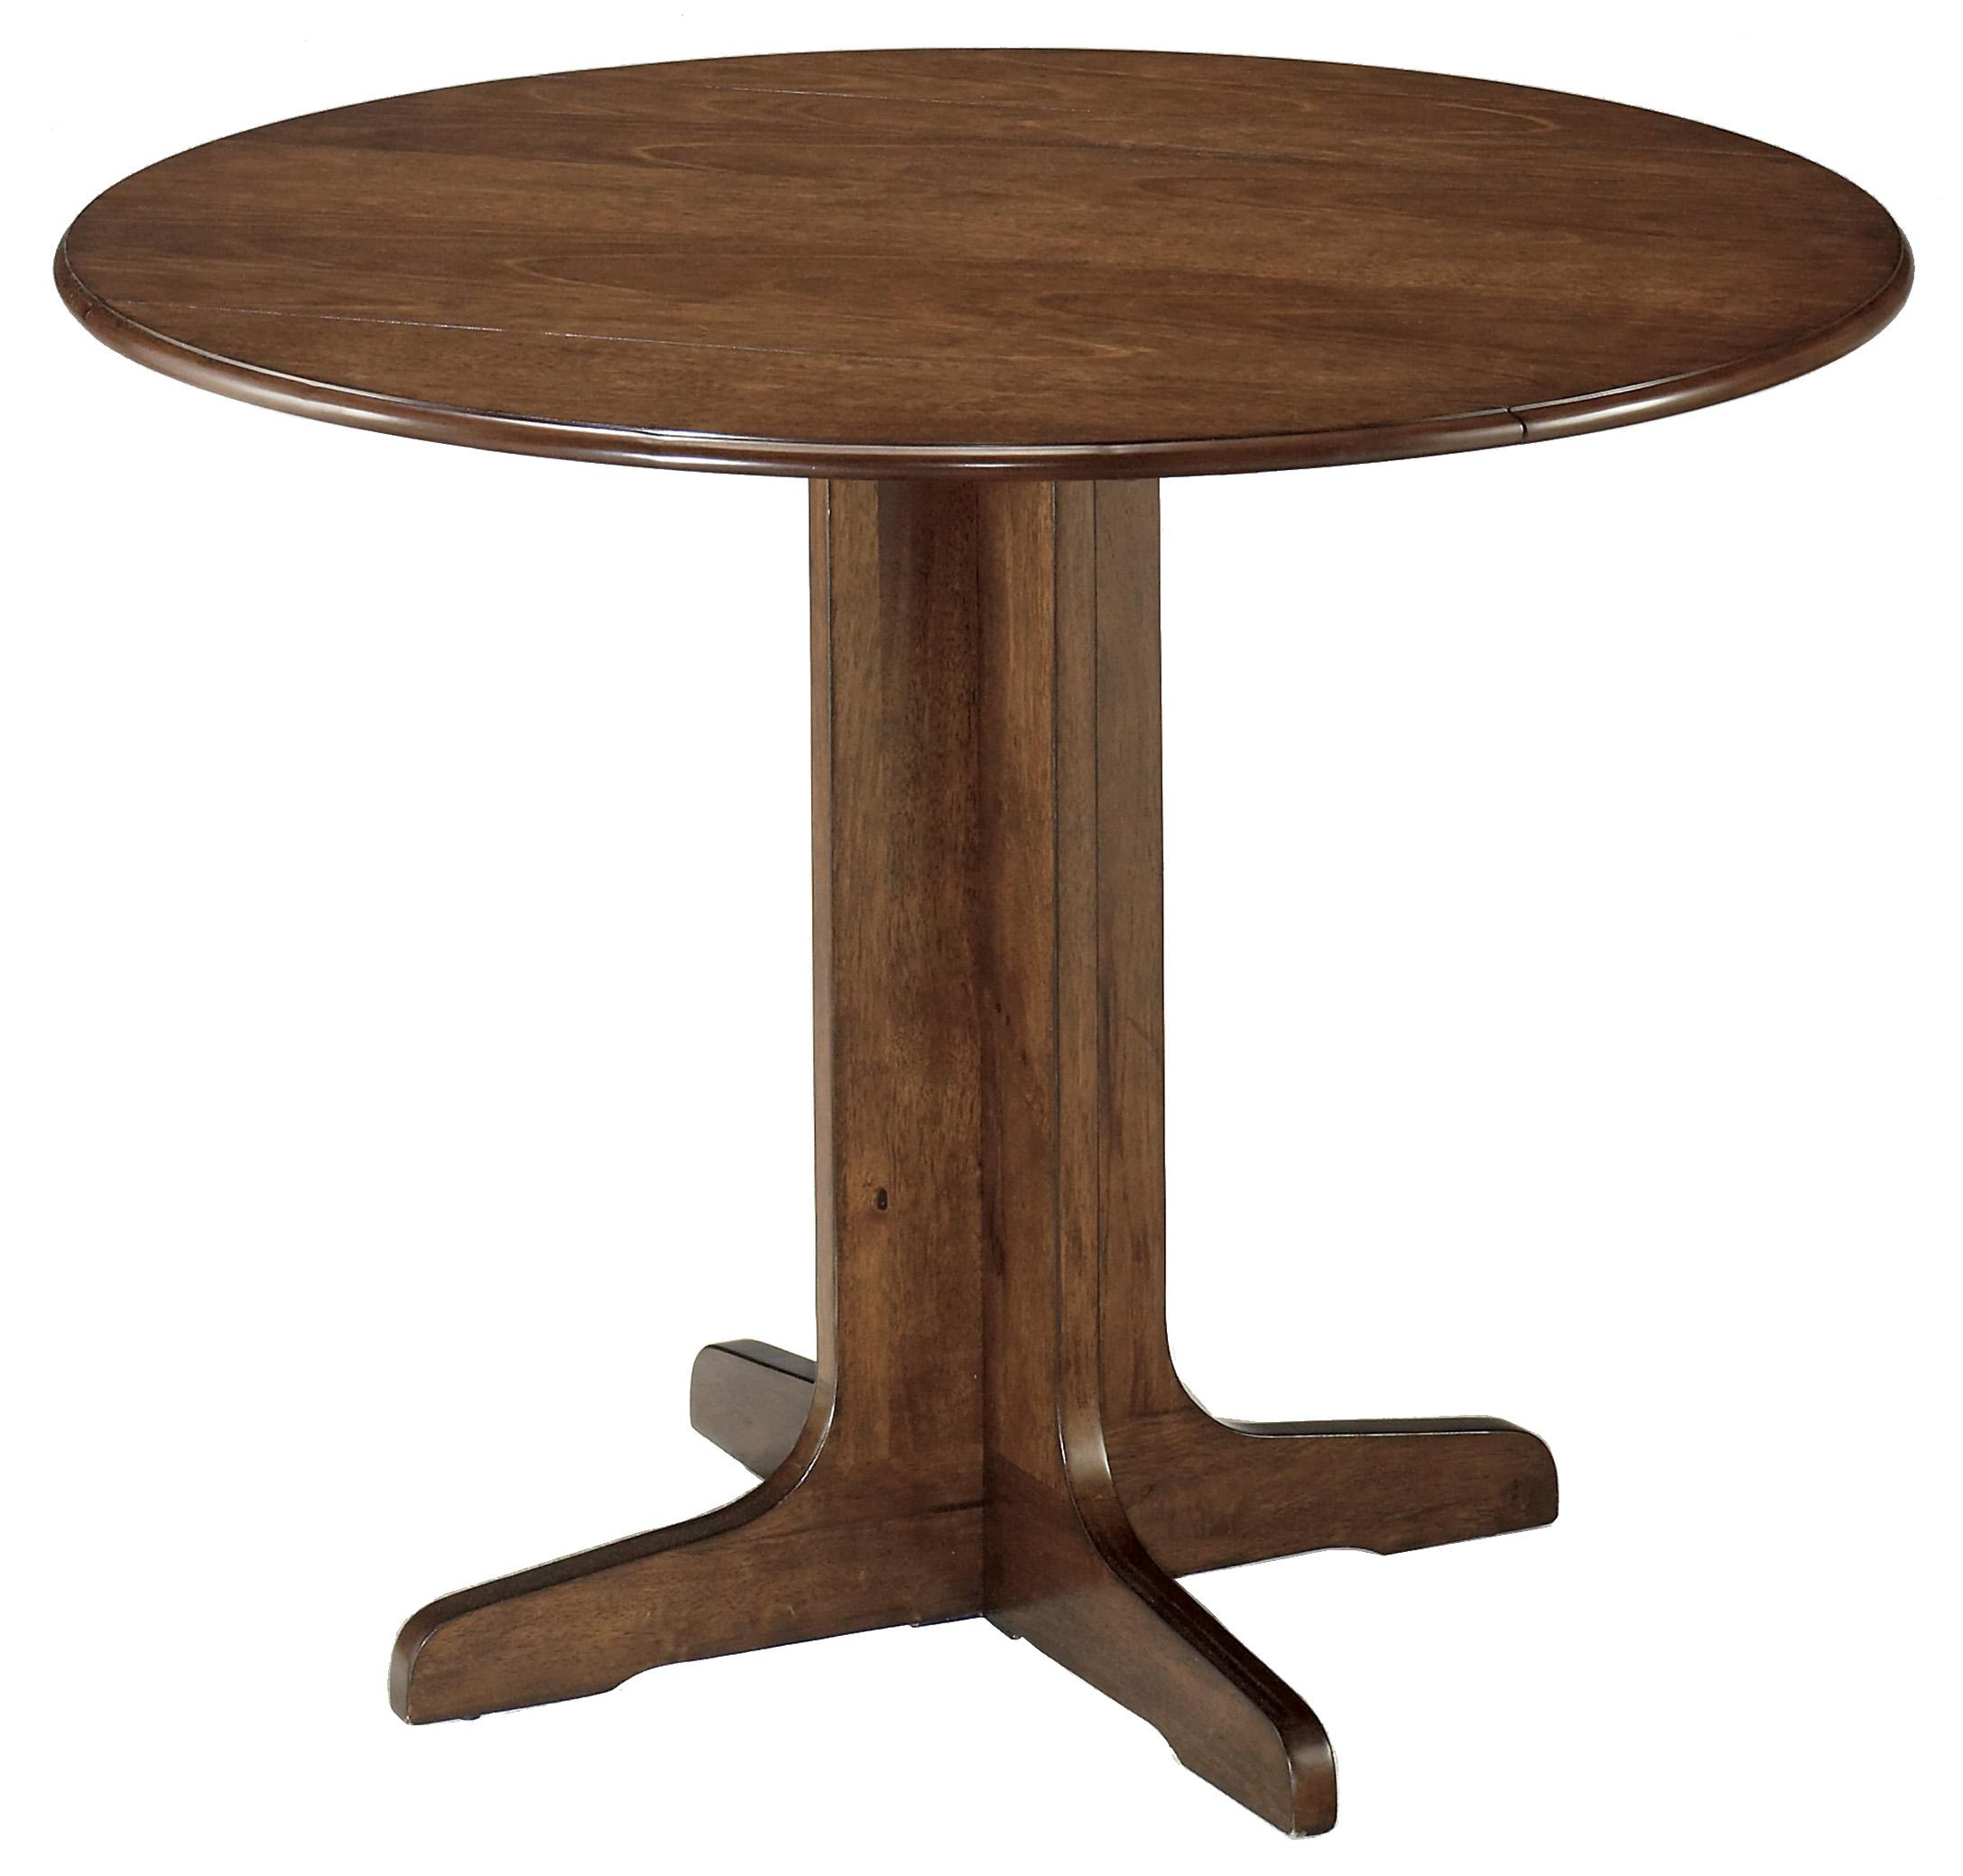 Ashley signature design stuman d293 15 round drop leaf for Round kitchen table sets with leaf